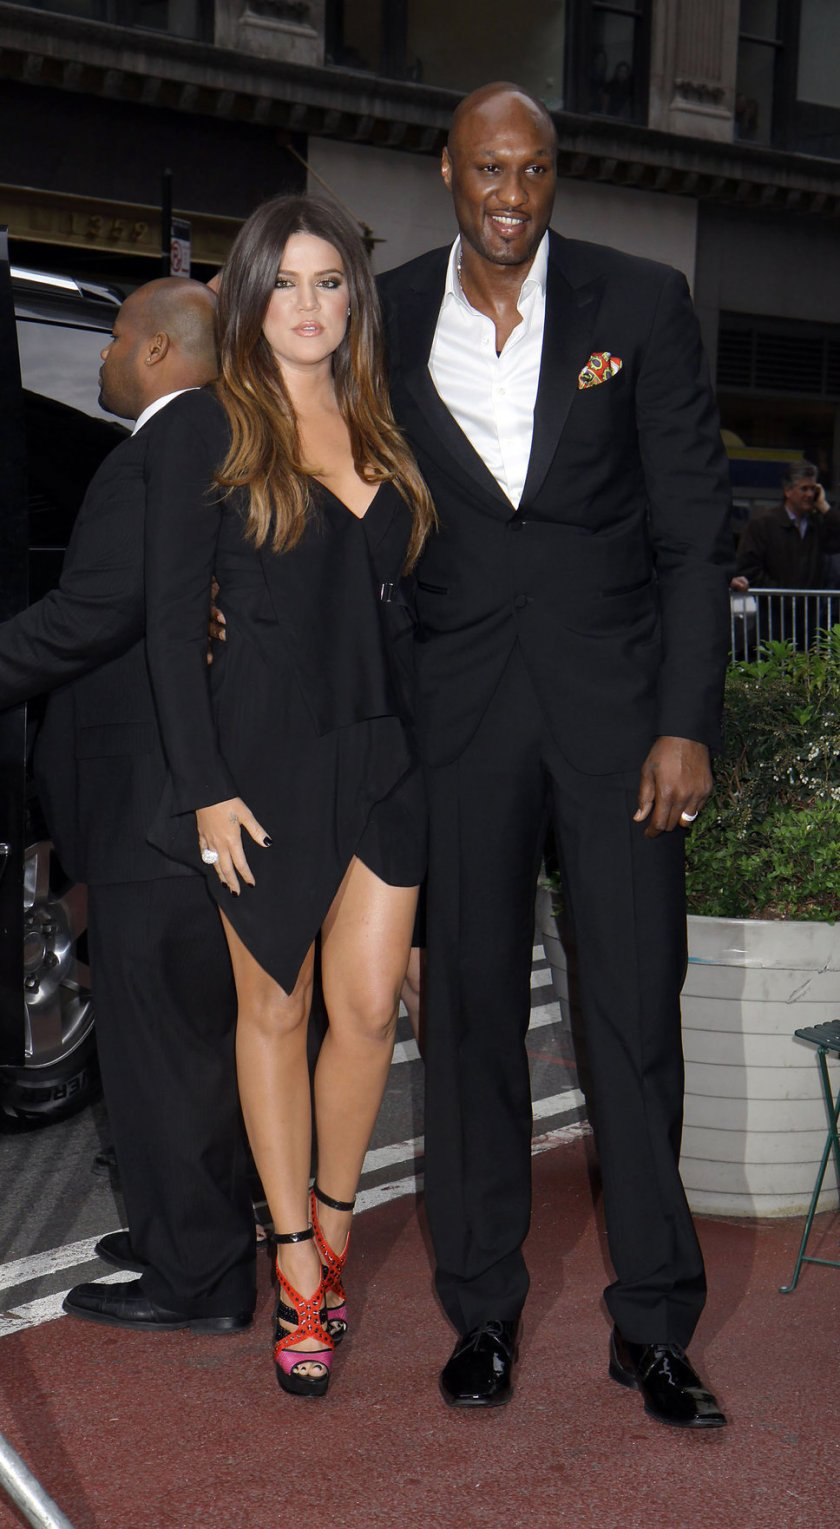 The Odoms are underrated in their style!